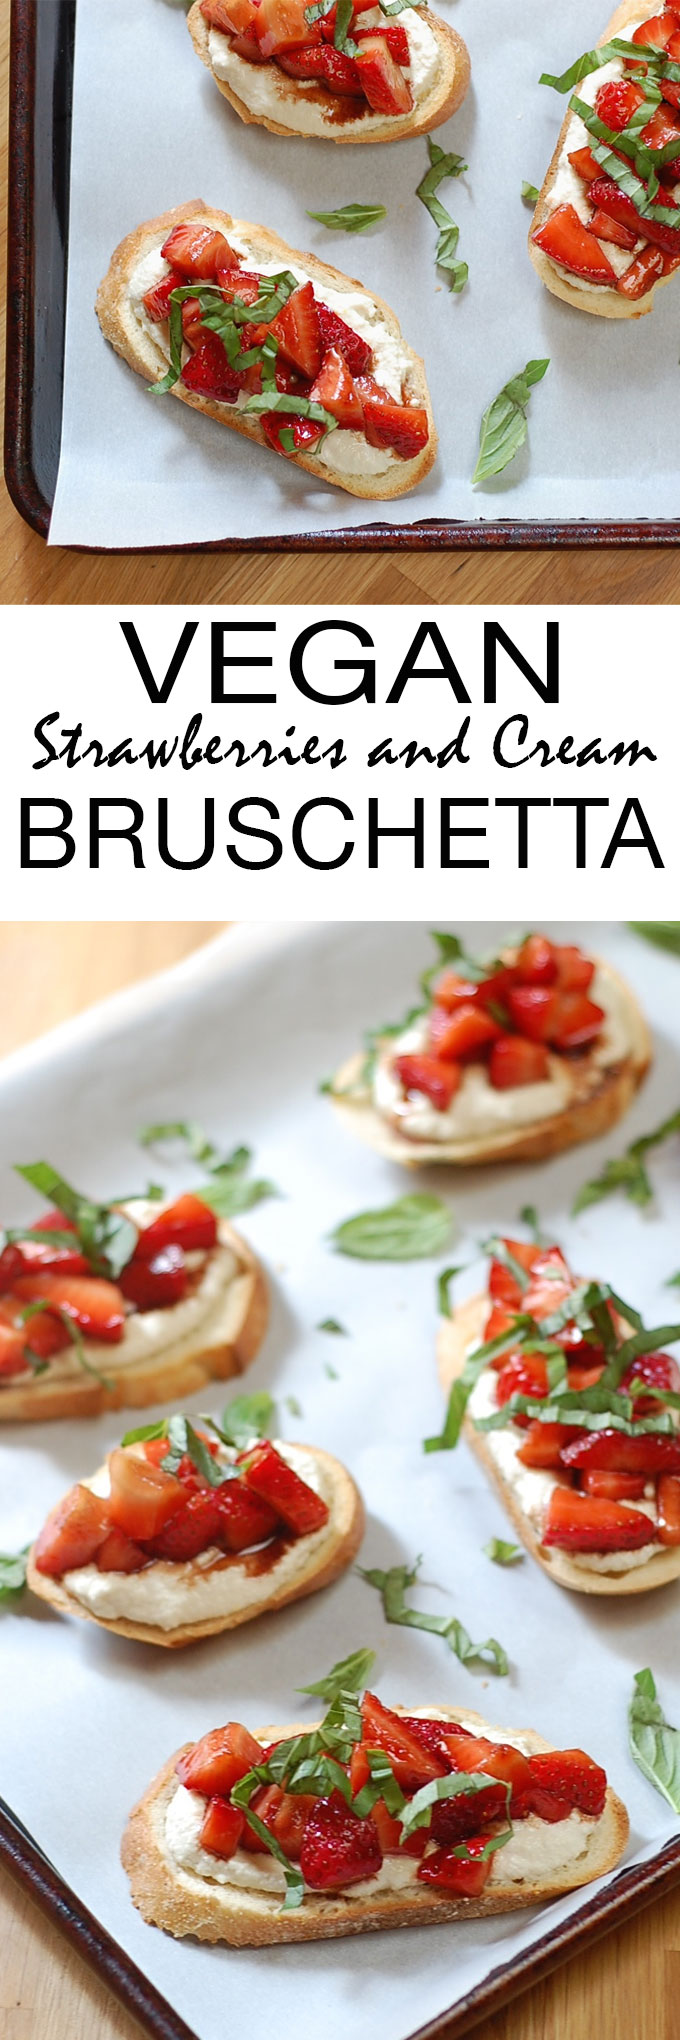 Creamy, delicious strawberry bruschetta toasts made light, healthy and vegan with cashew cream. This recipe is so easy and elegant, perfect for any spring or summer meal!